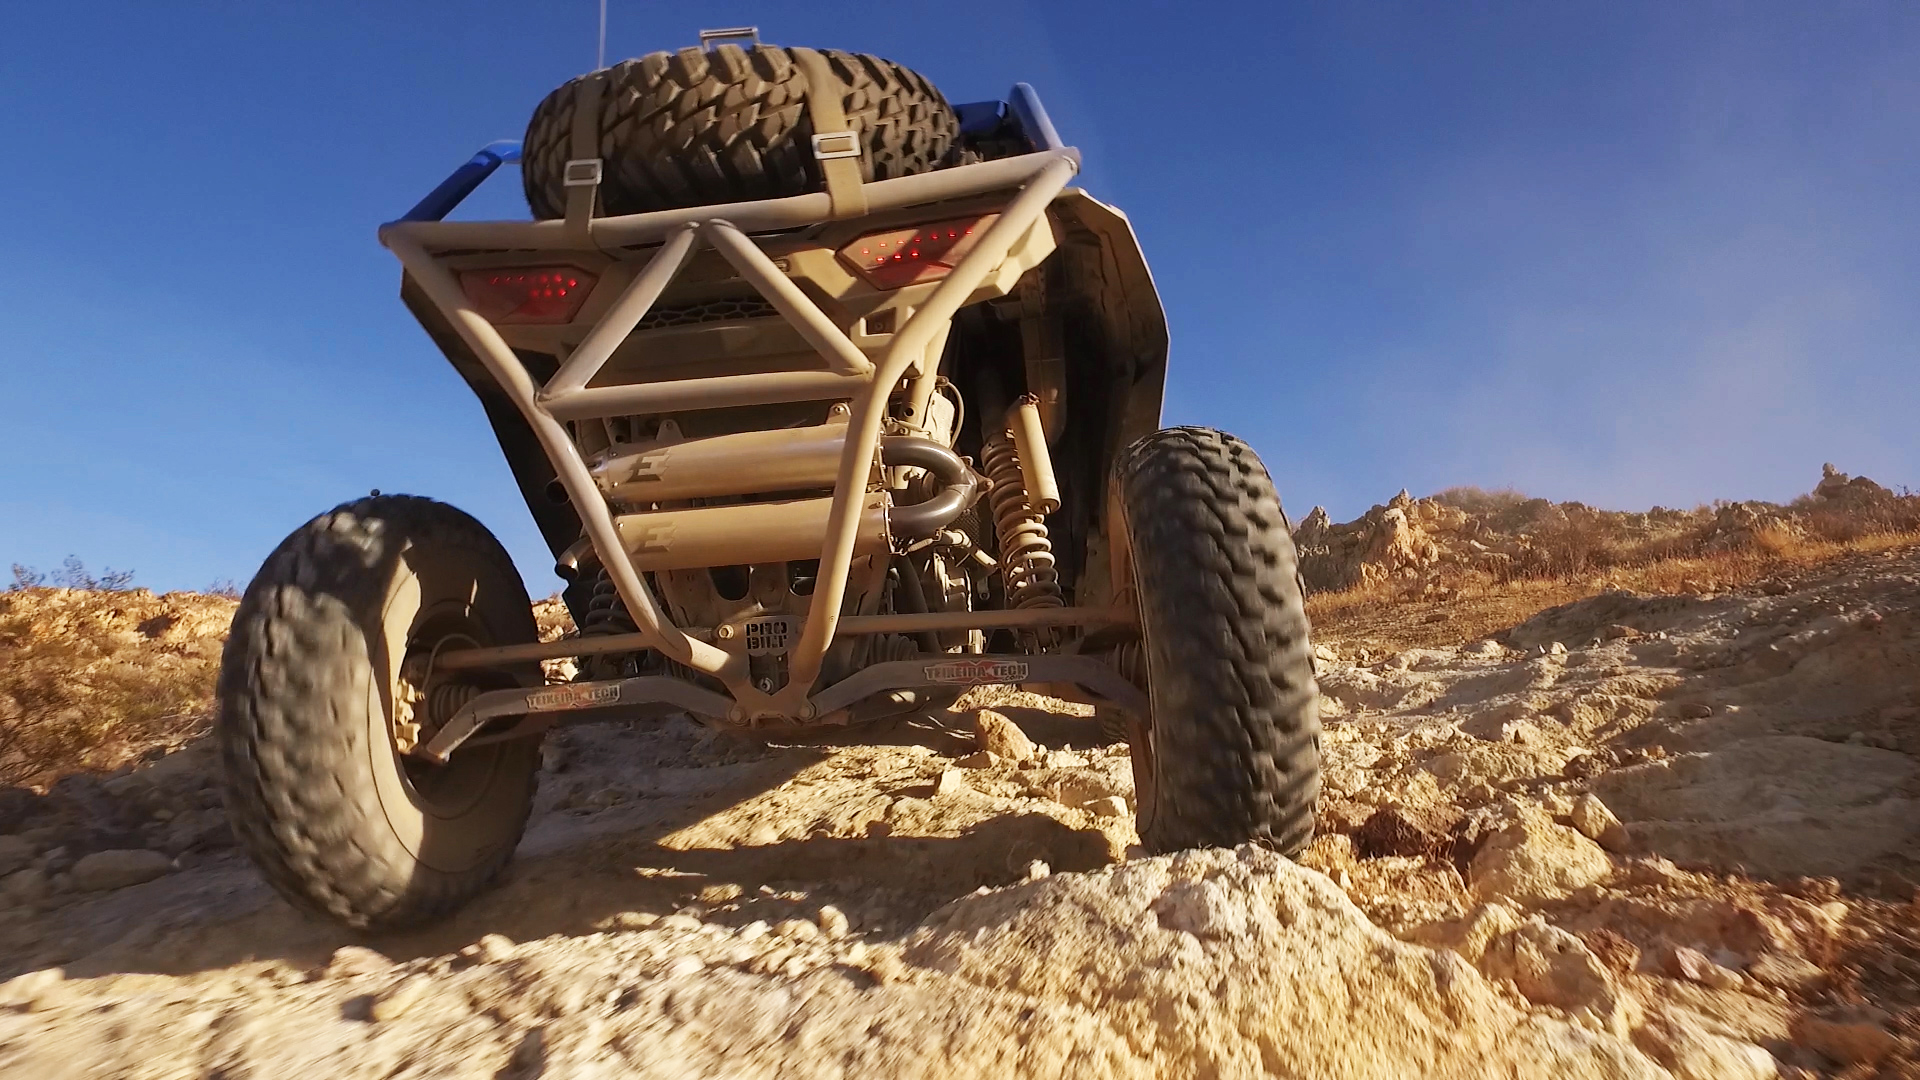 Polaris RZR XP 4 Turbo Upgrade Project Test: WITH VIDEO